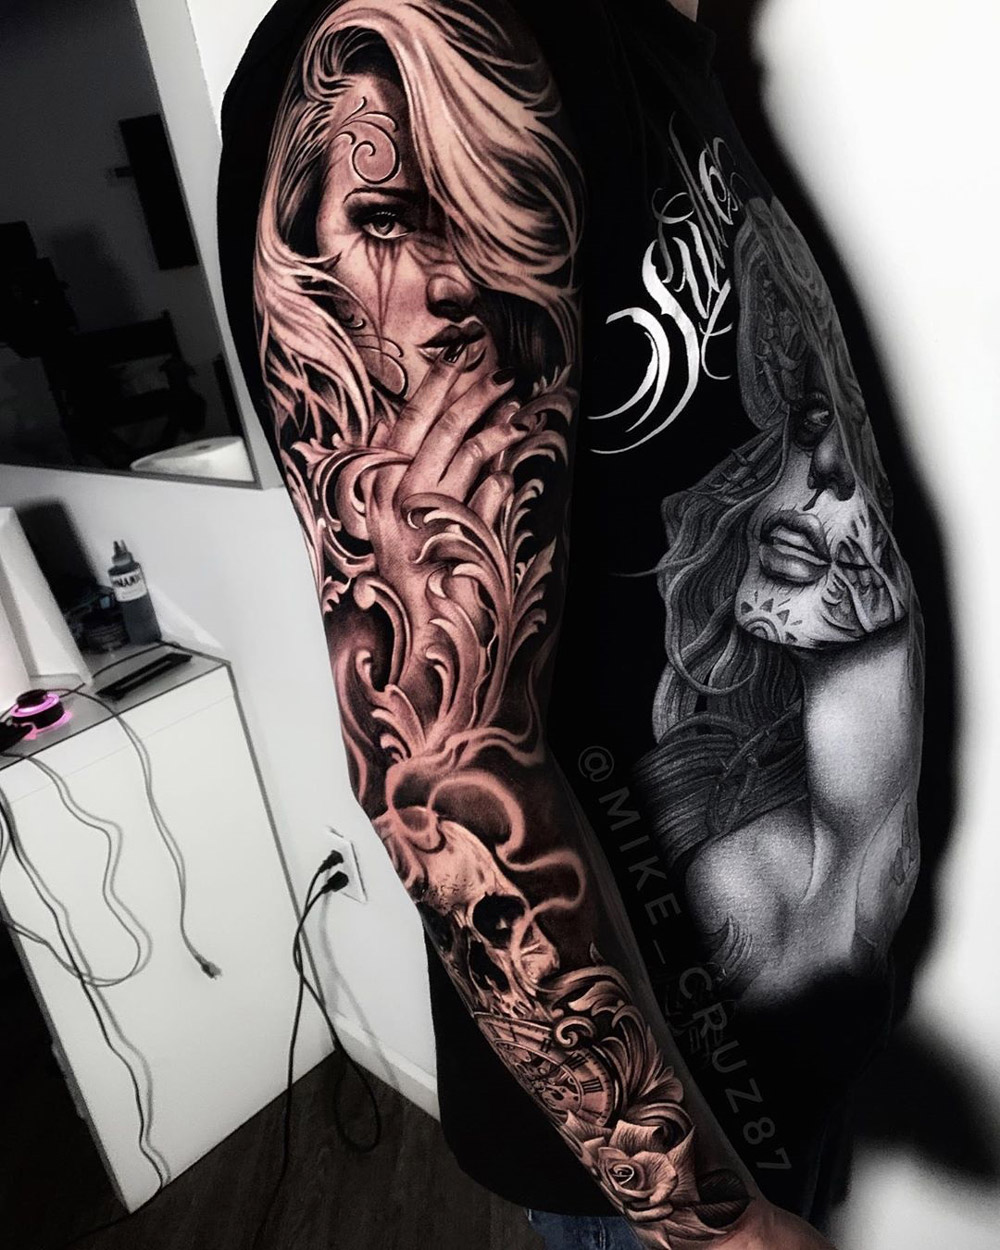 Portrait & Filigree Sleeve